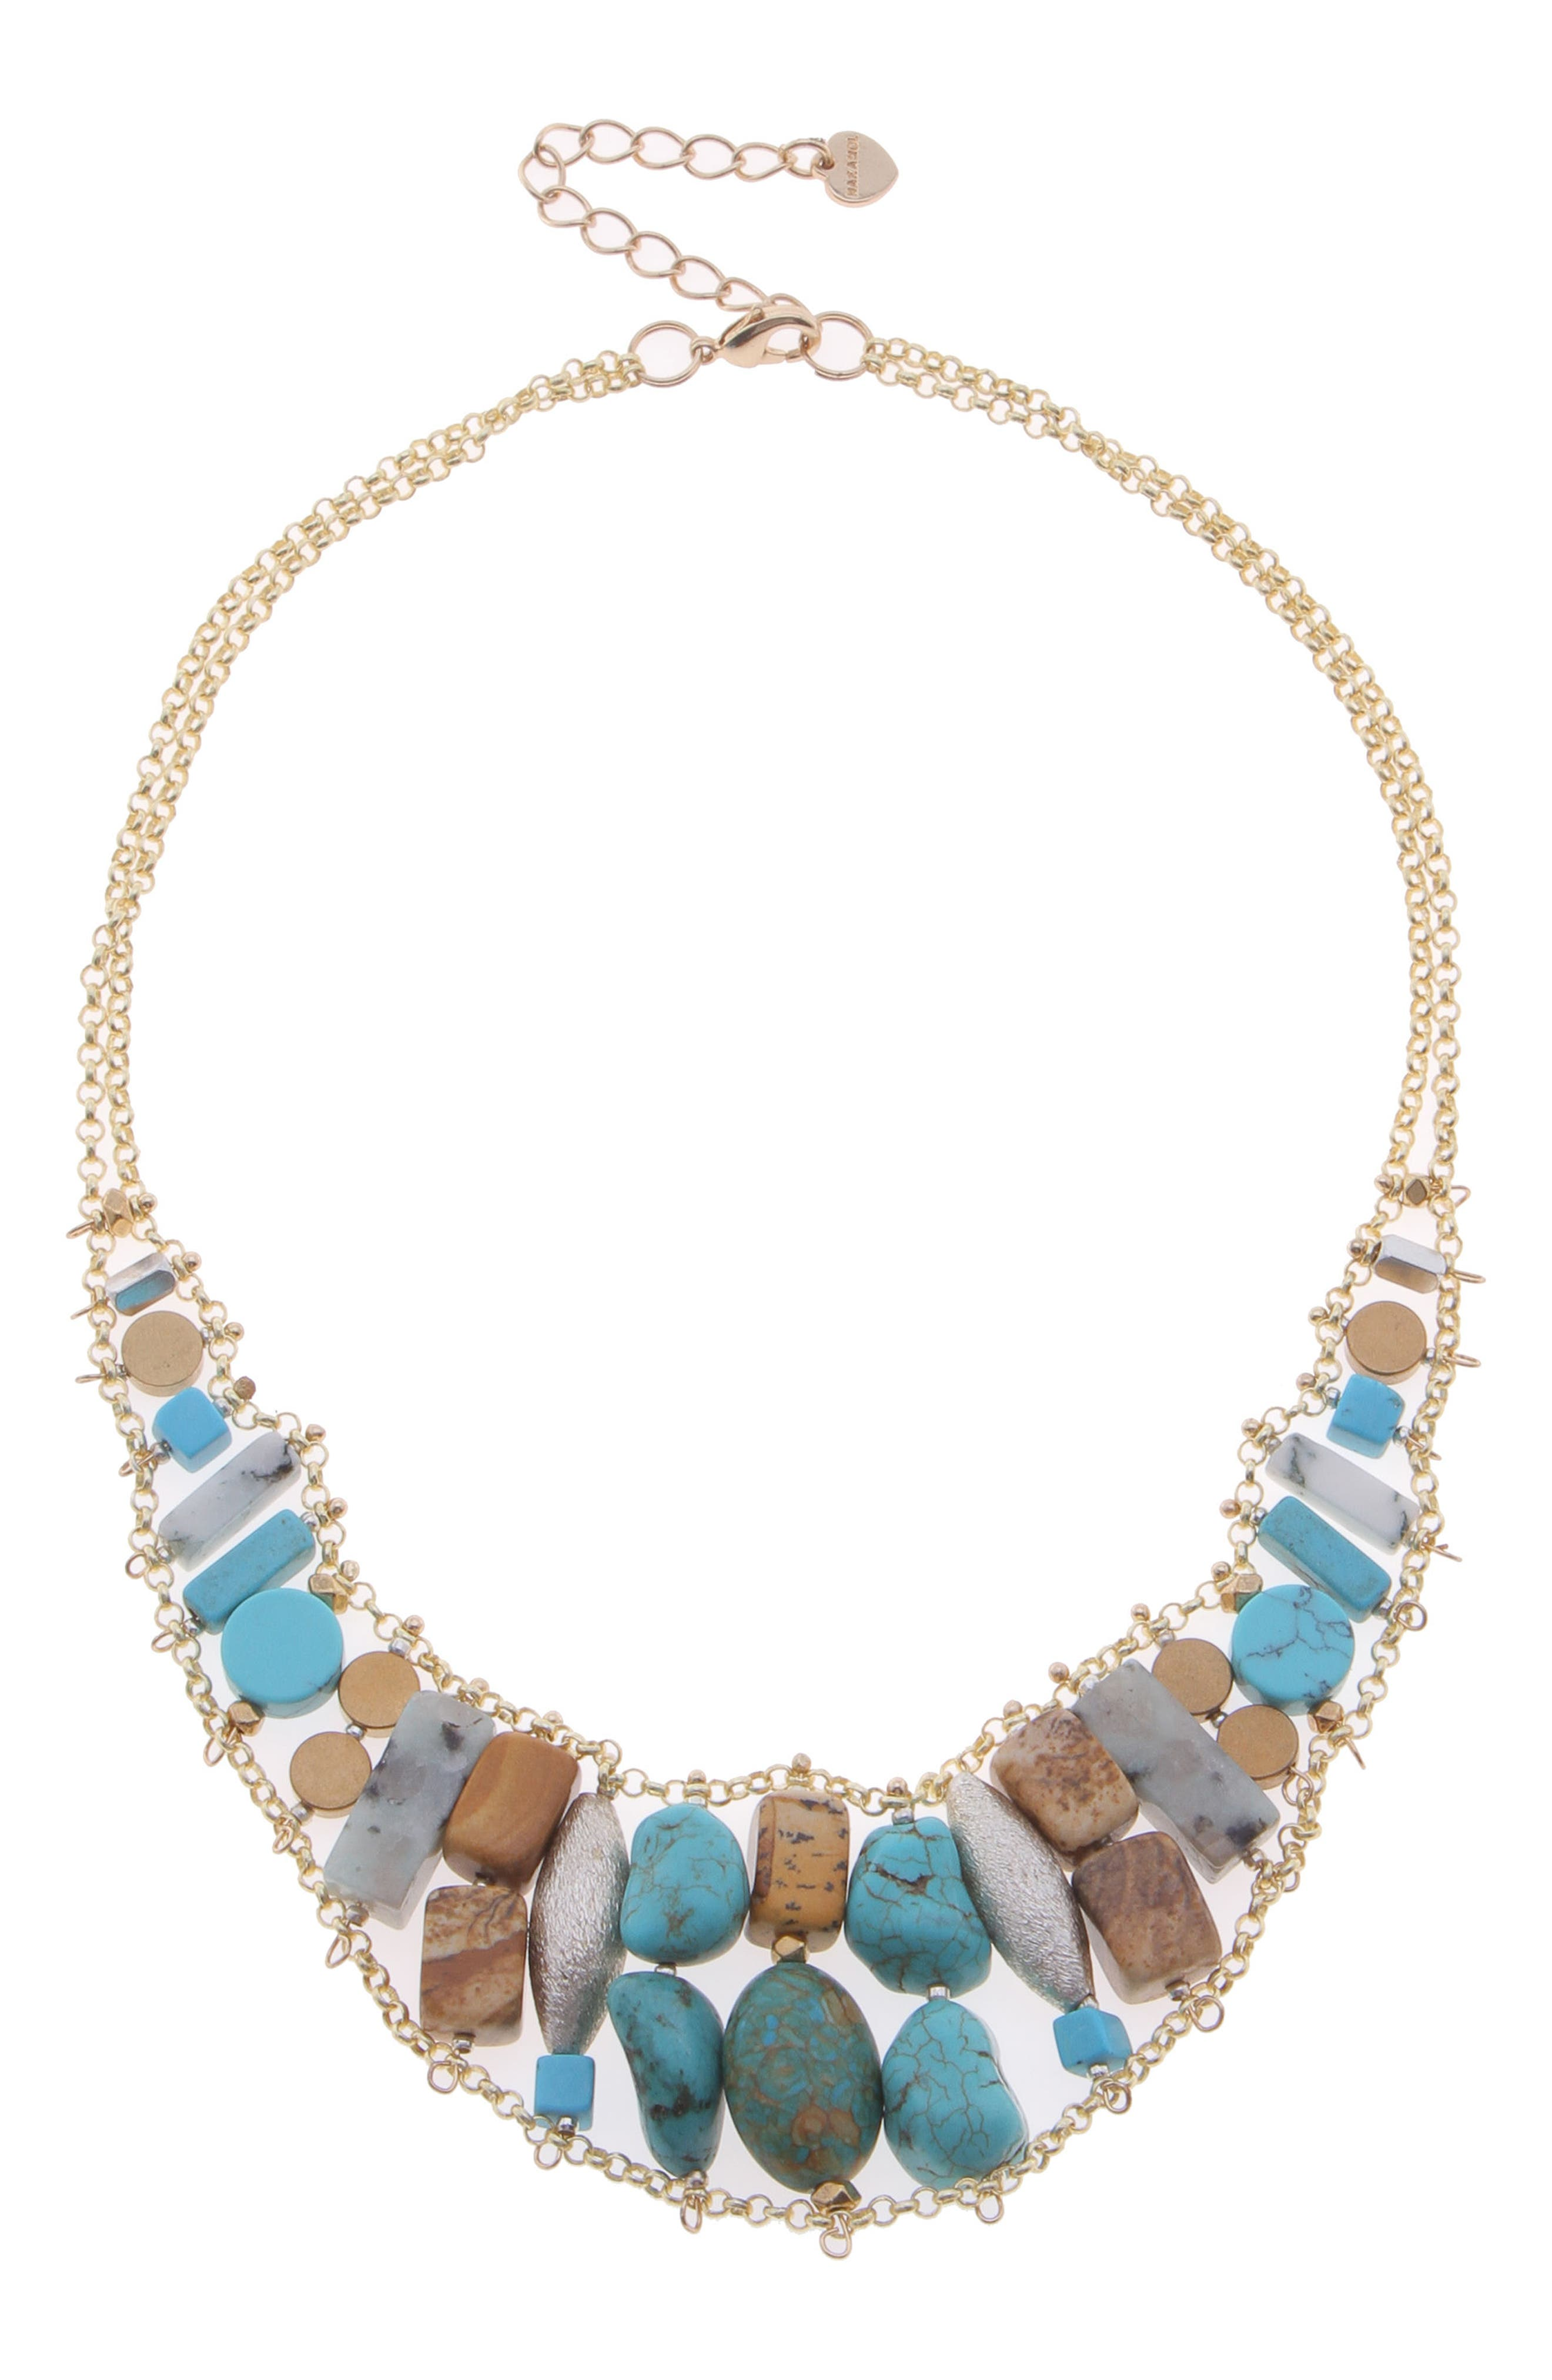 Stone & Freshwater Pearl Collar Necklace,                             Main thumbnail 1, color,                             Turquoise